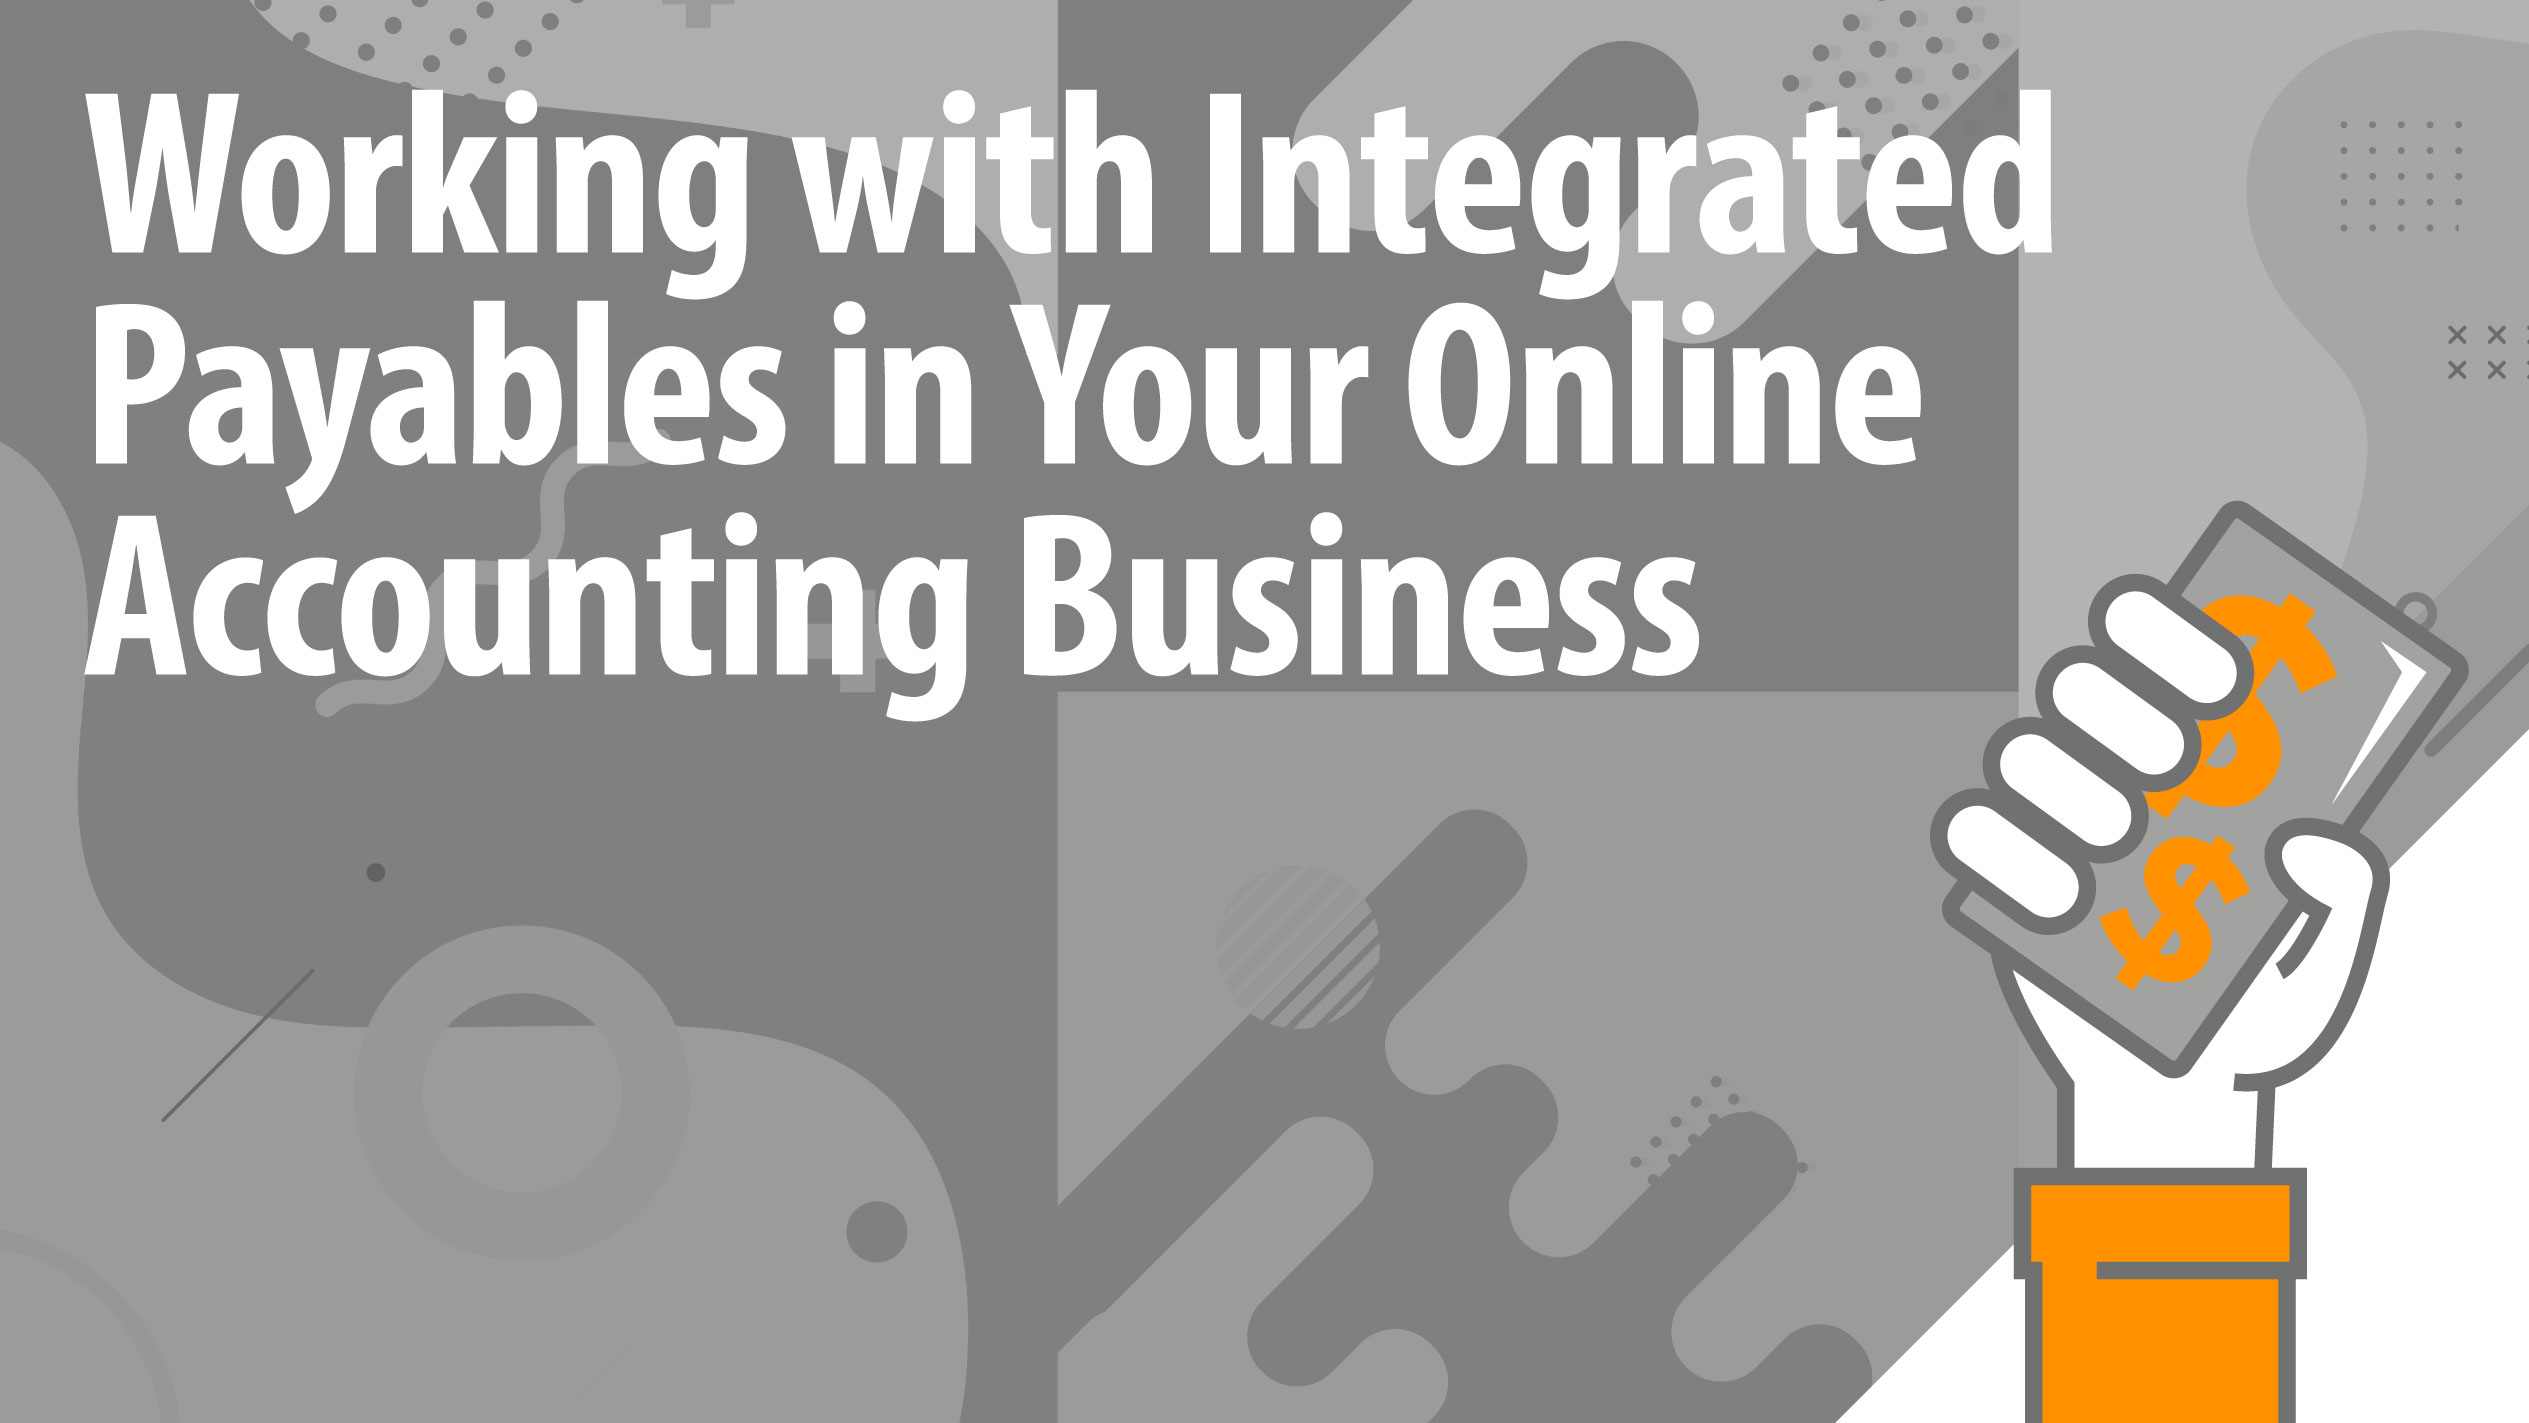 Working with Integrated Payables in Your Online Accounting Business